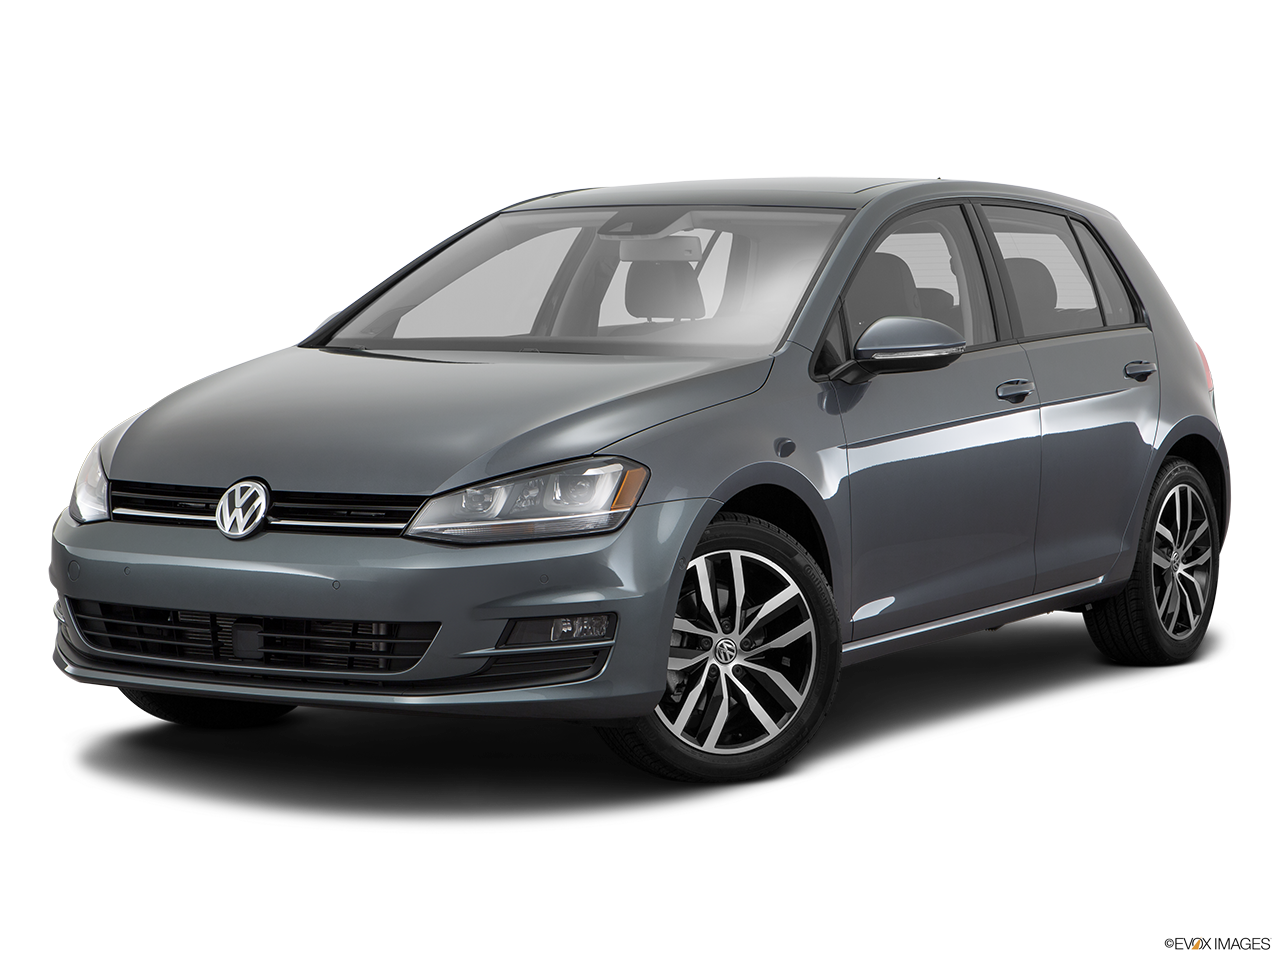 Test Drive A 2016 Volkswagen Golf at New Century Volkswagen in Los Angeles